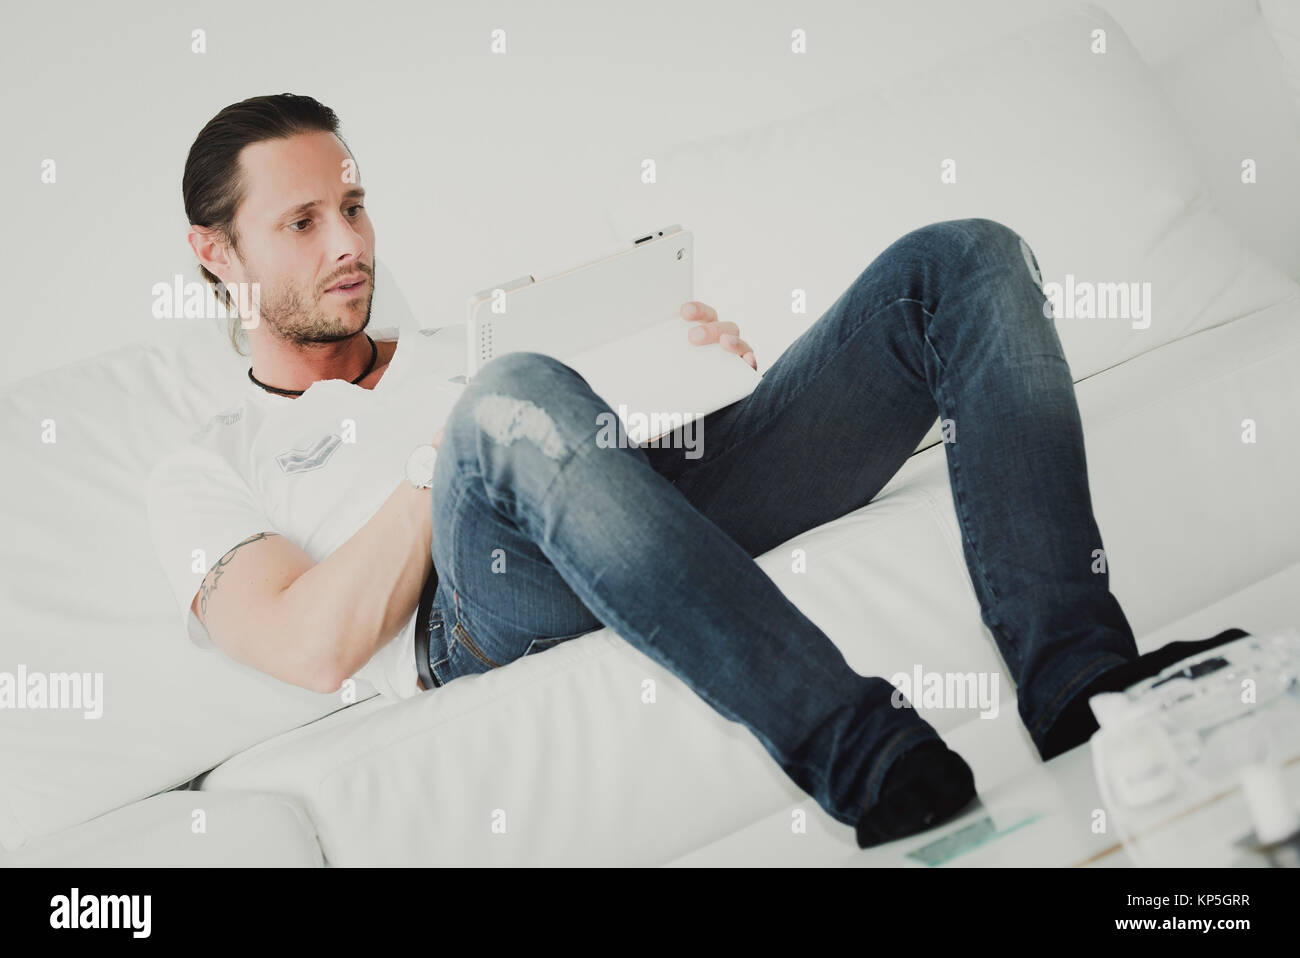 Mann mit IPad auf der Couch - man with Ipad sitting on a couch - Stock Image